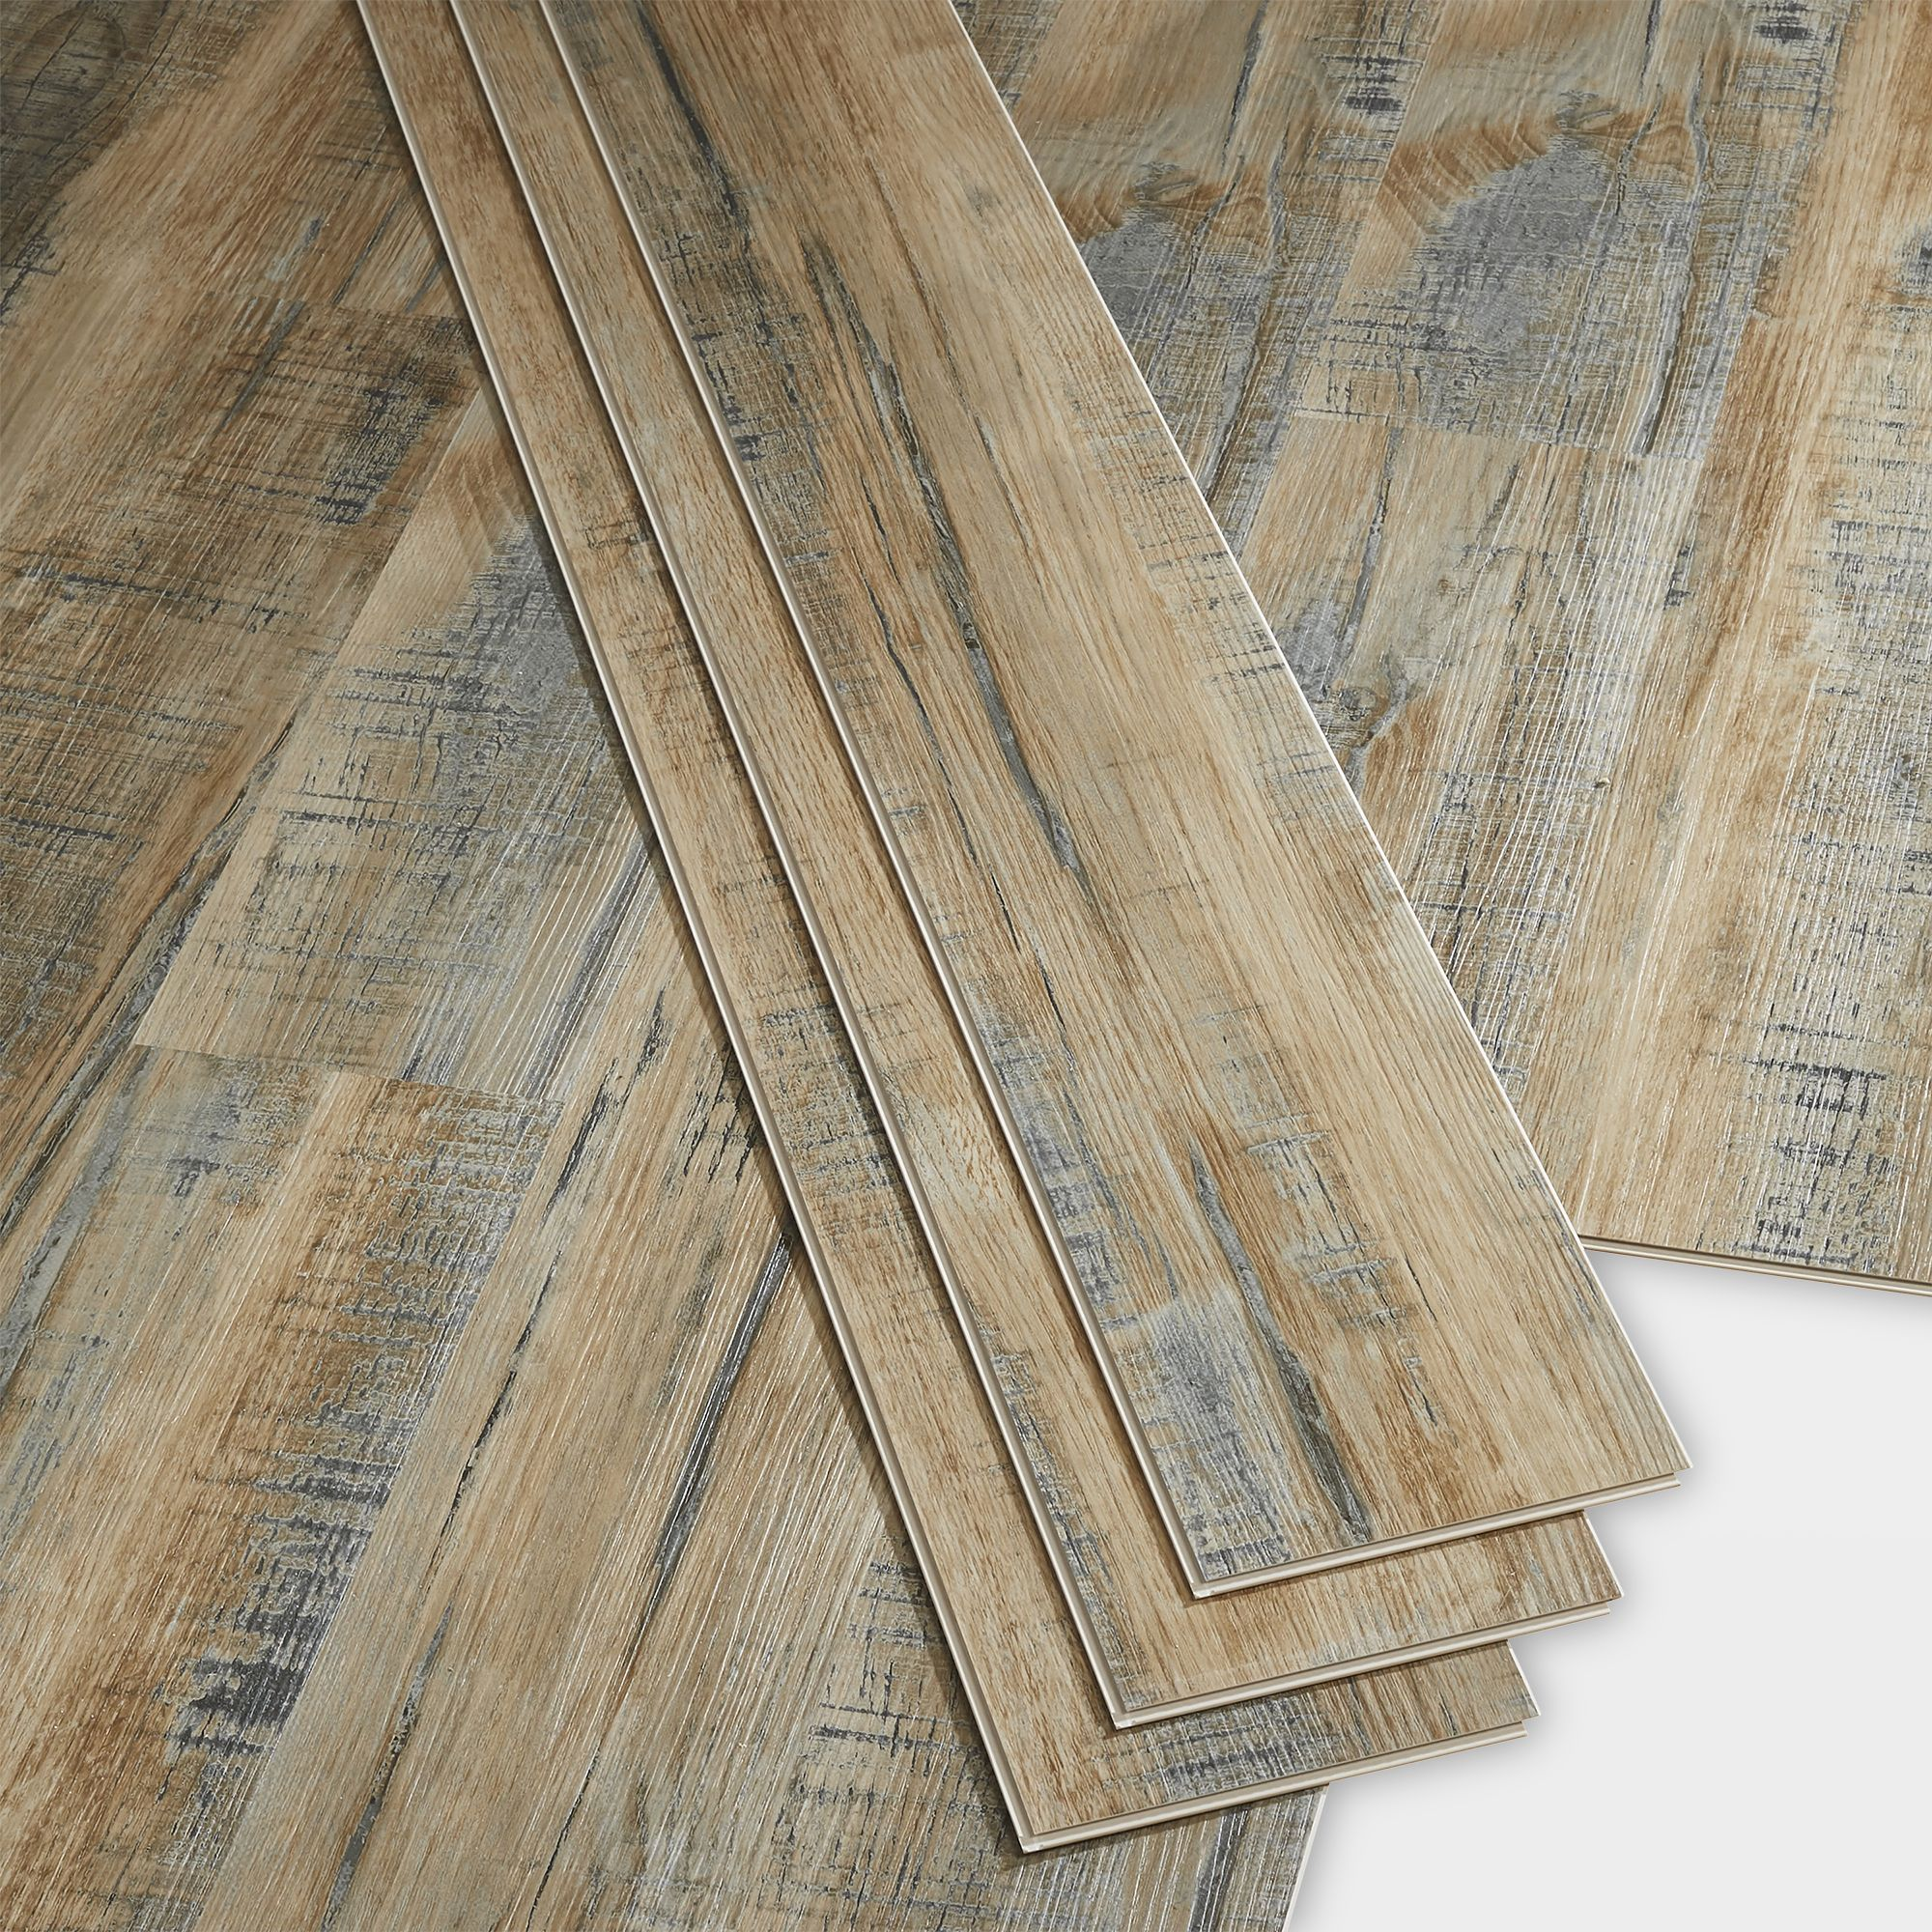 GoodHome Bachata Hadaka Wood effect Luxury vinyl click flooring, 5.5m²  Pack  Departments  DIY at B&Q